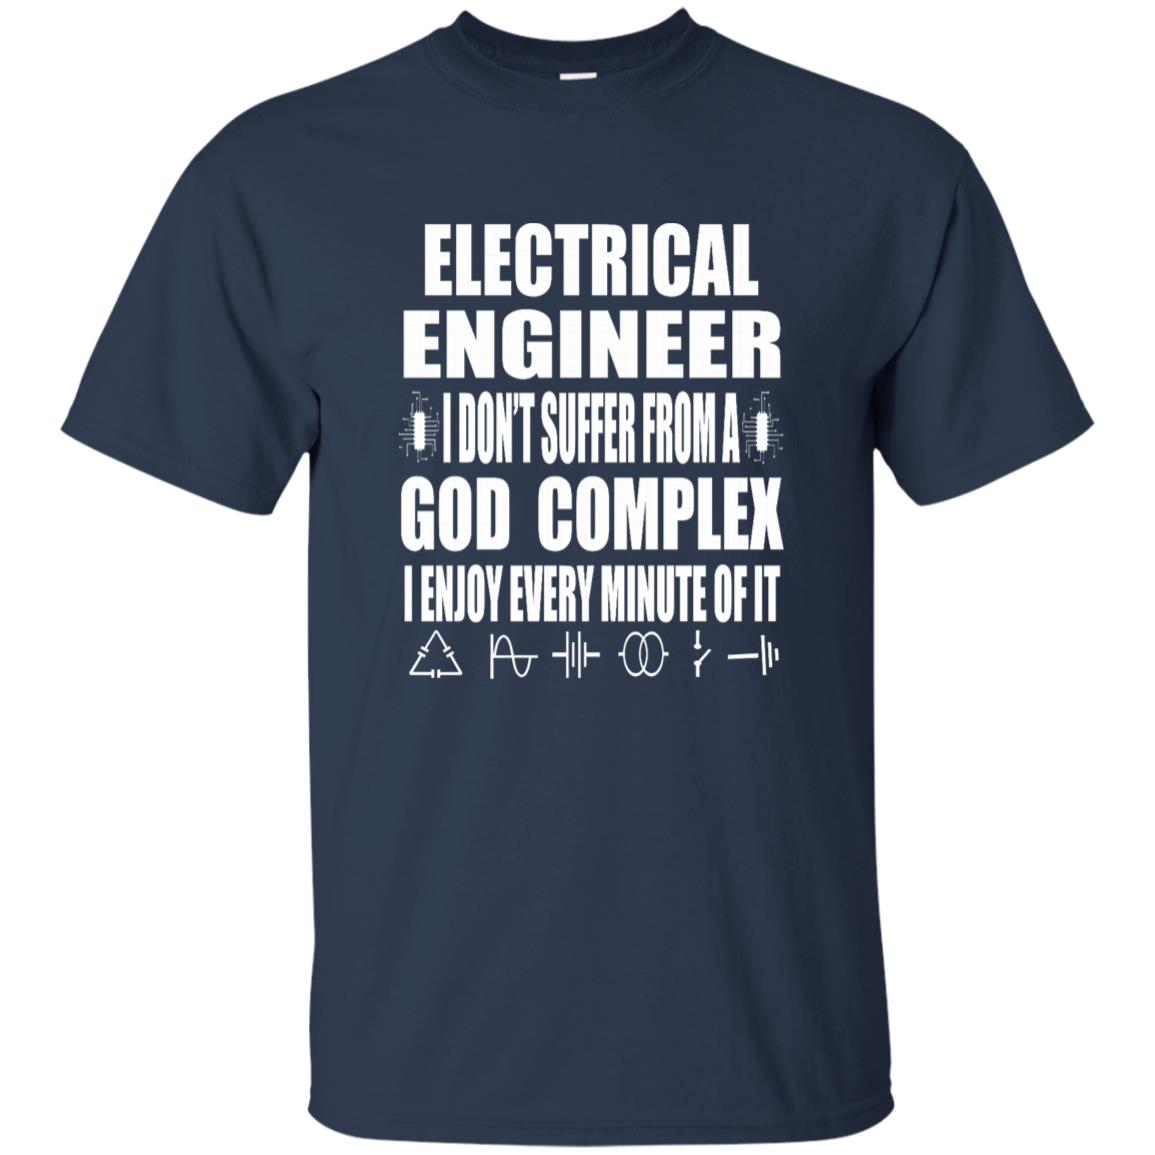 Electrical Engineer Funny Electric Engineer Gift Lss Unisex Short Sleeve